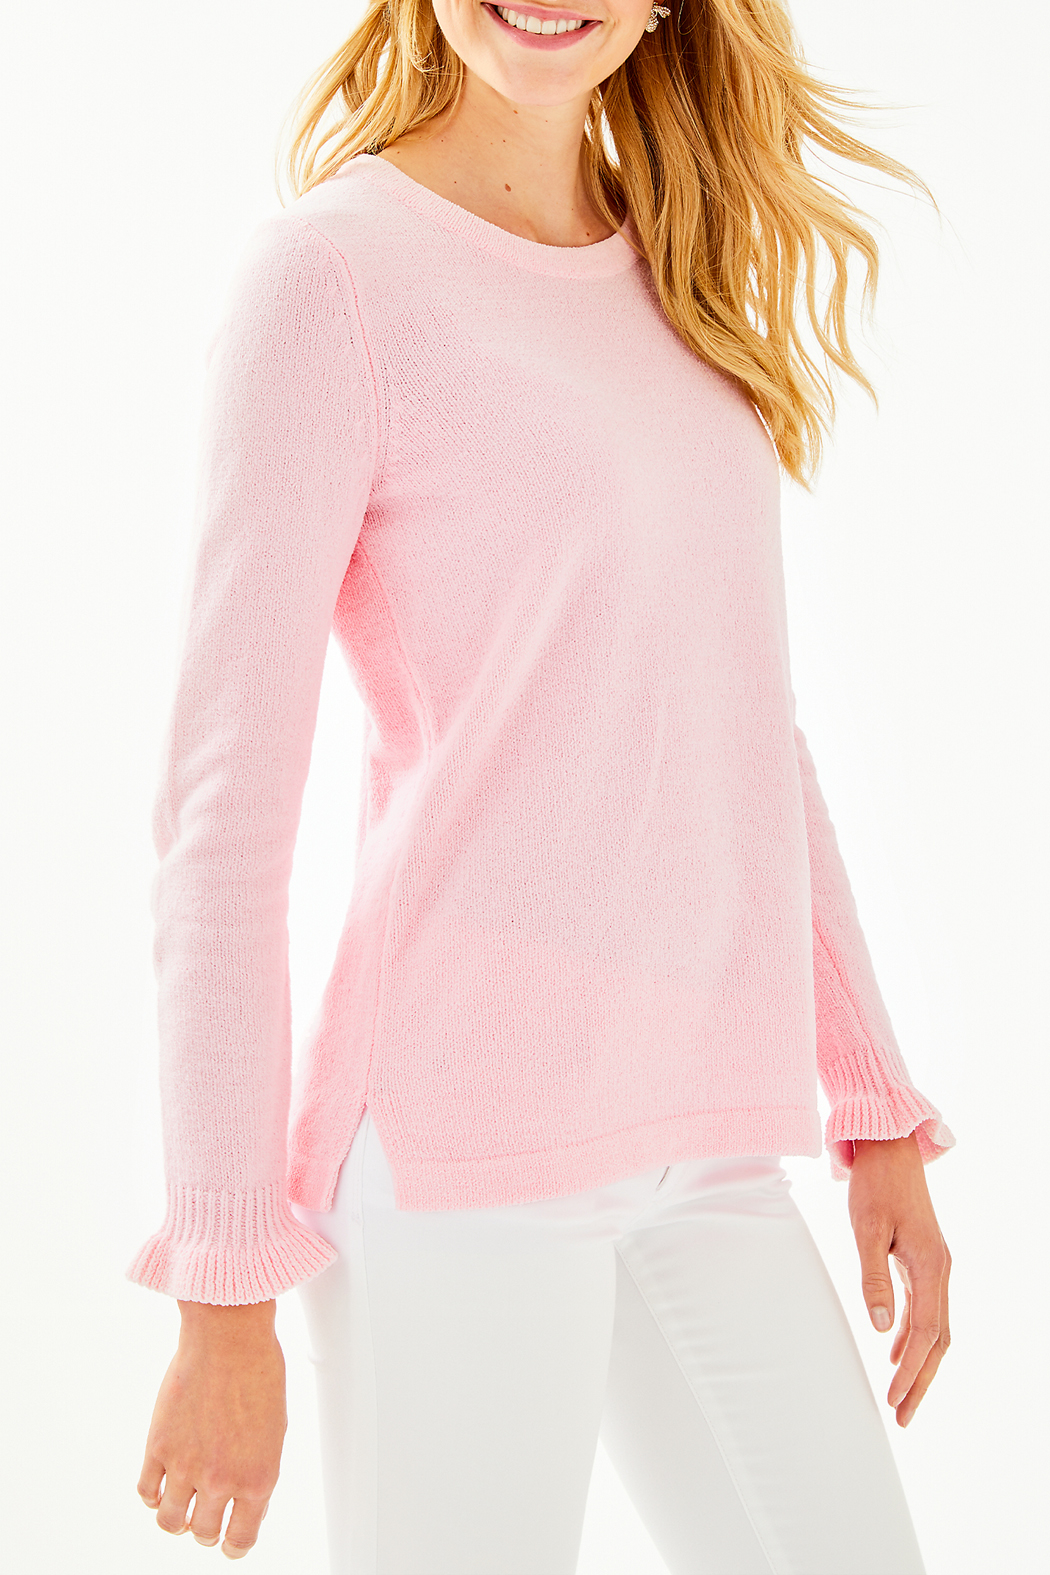 Lilly Pulitzer Calloway Chenille Sweater 004498 - Front Cropped Image